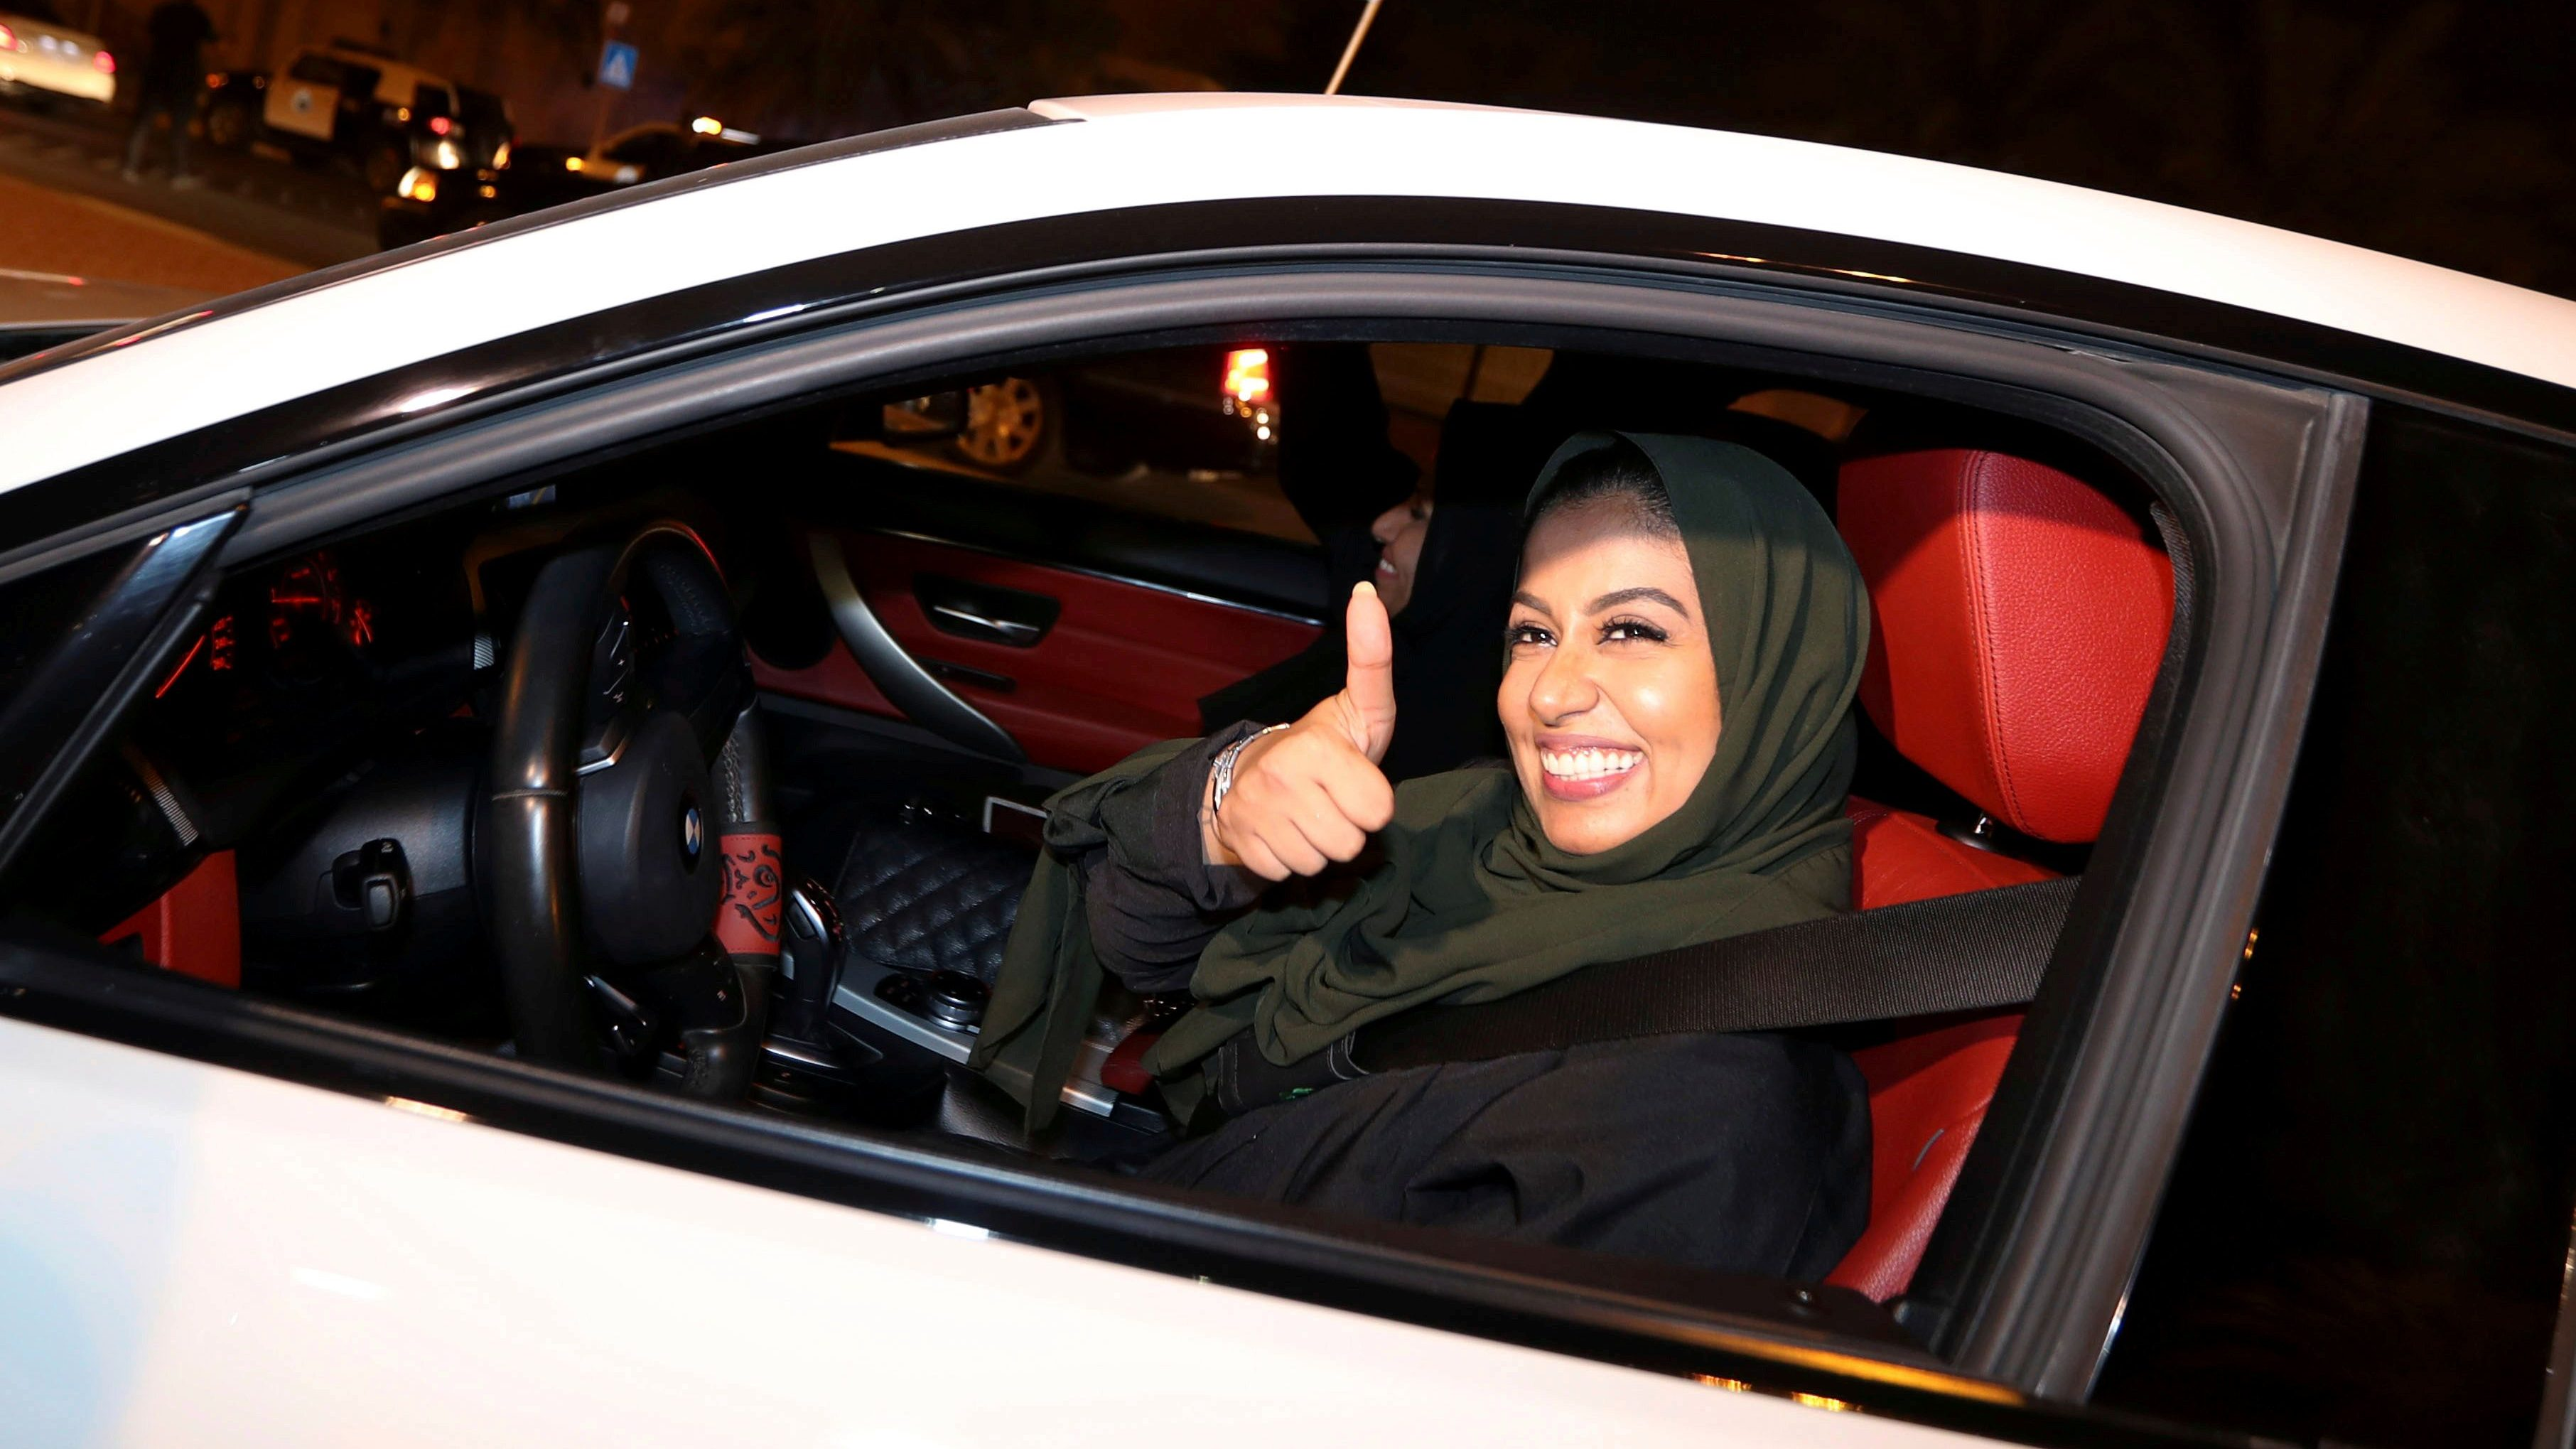 Women Driving In Saudi Arabia Is About Economics Not Equality Quartz